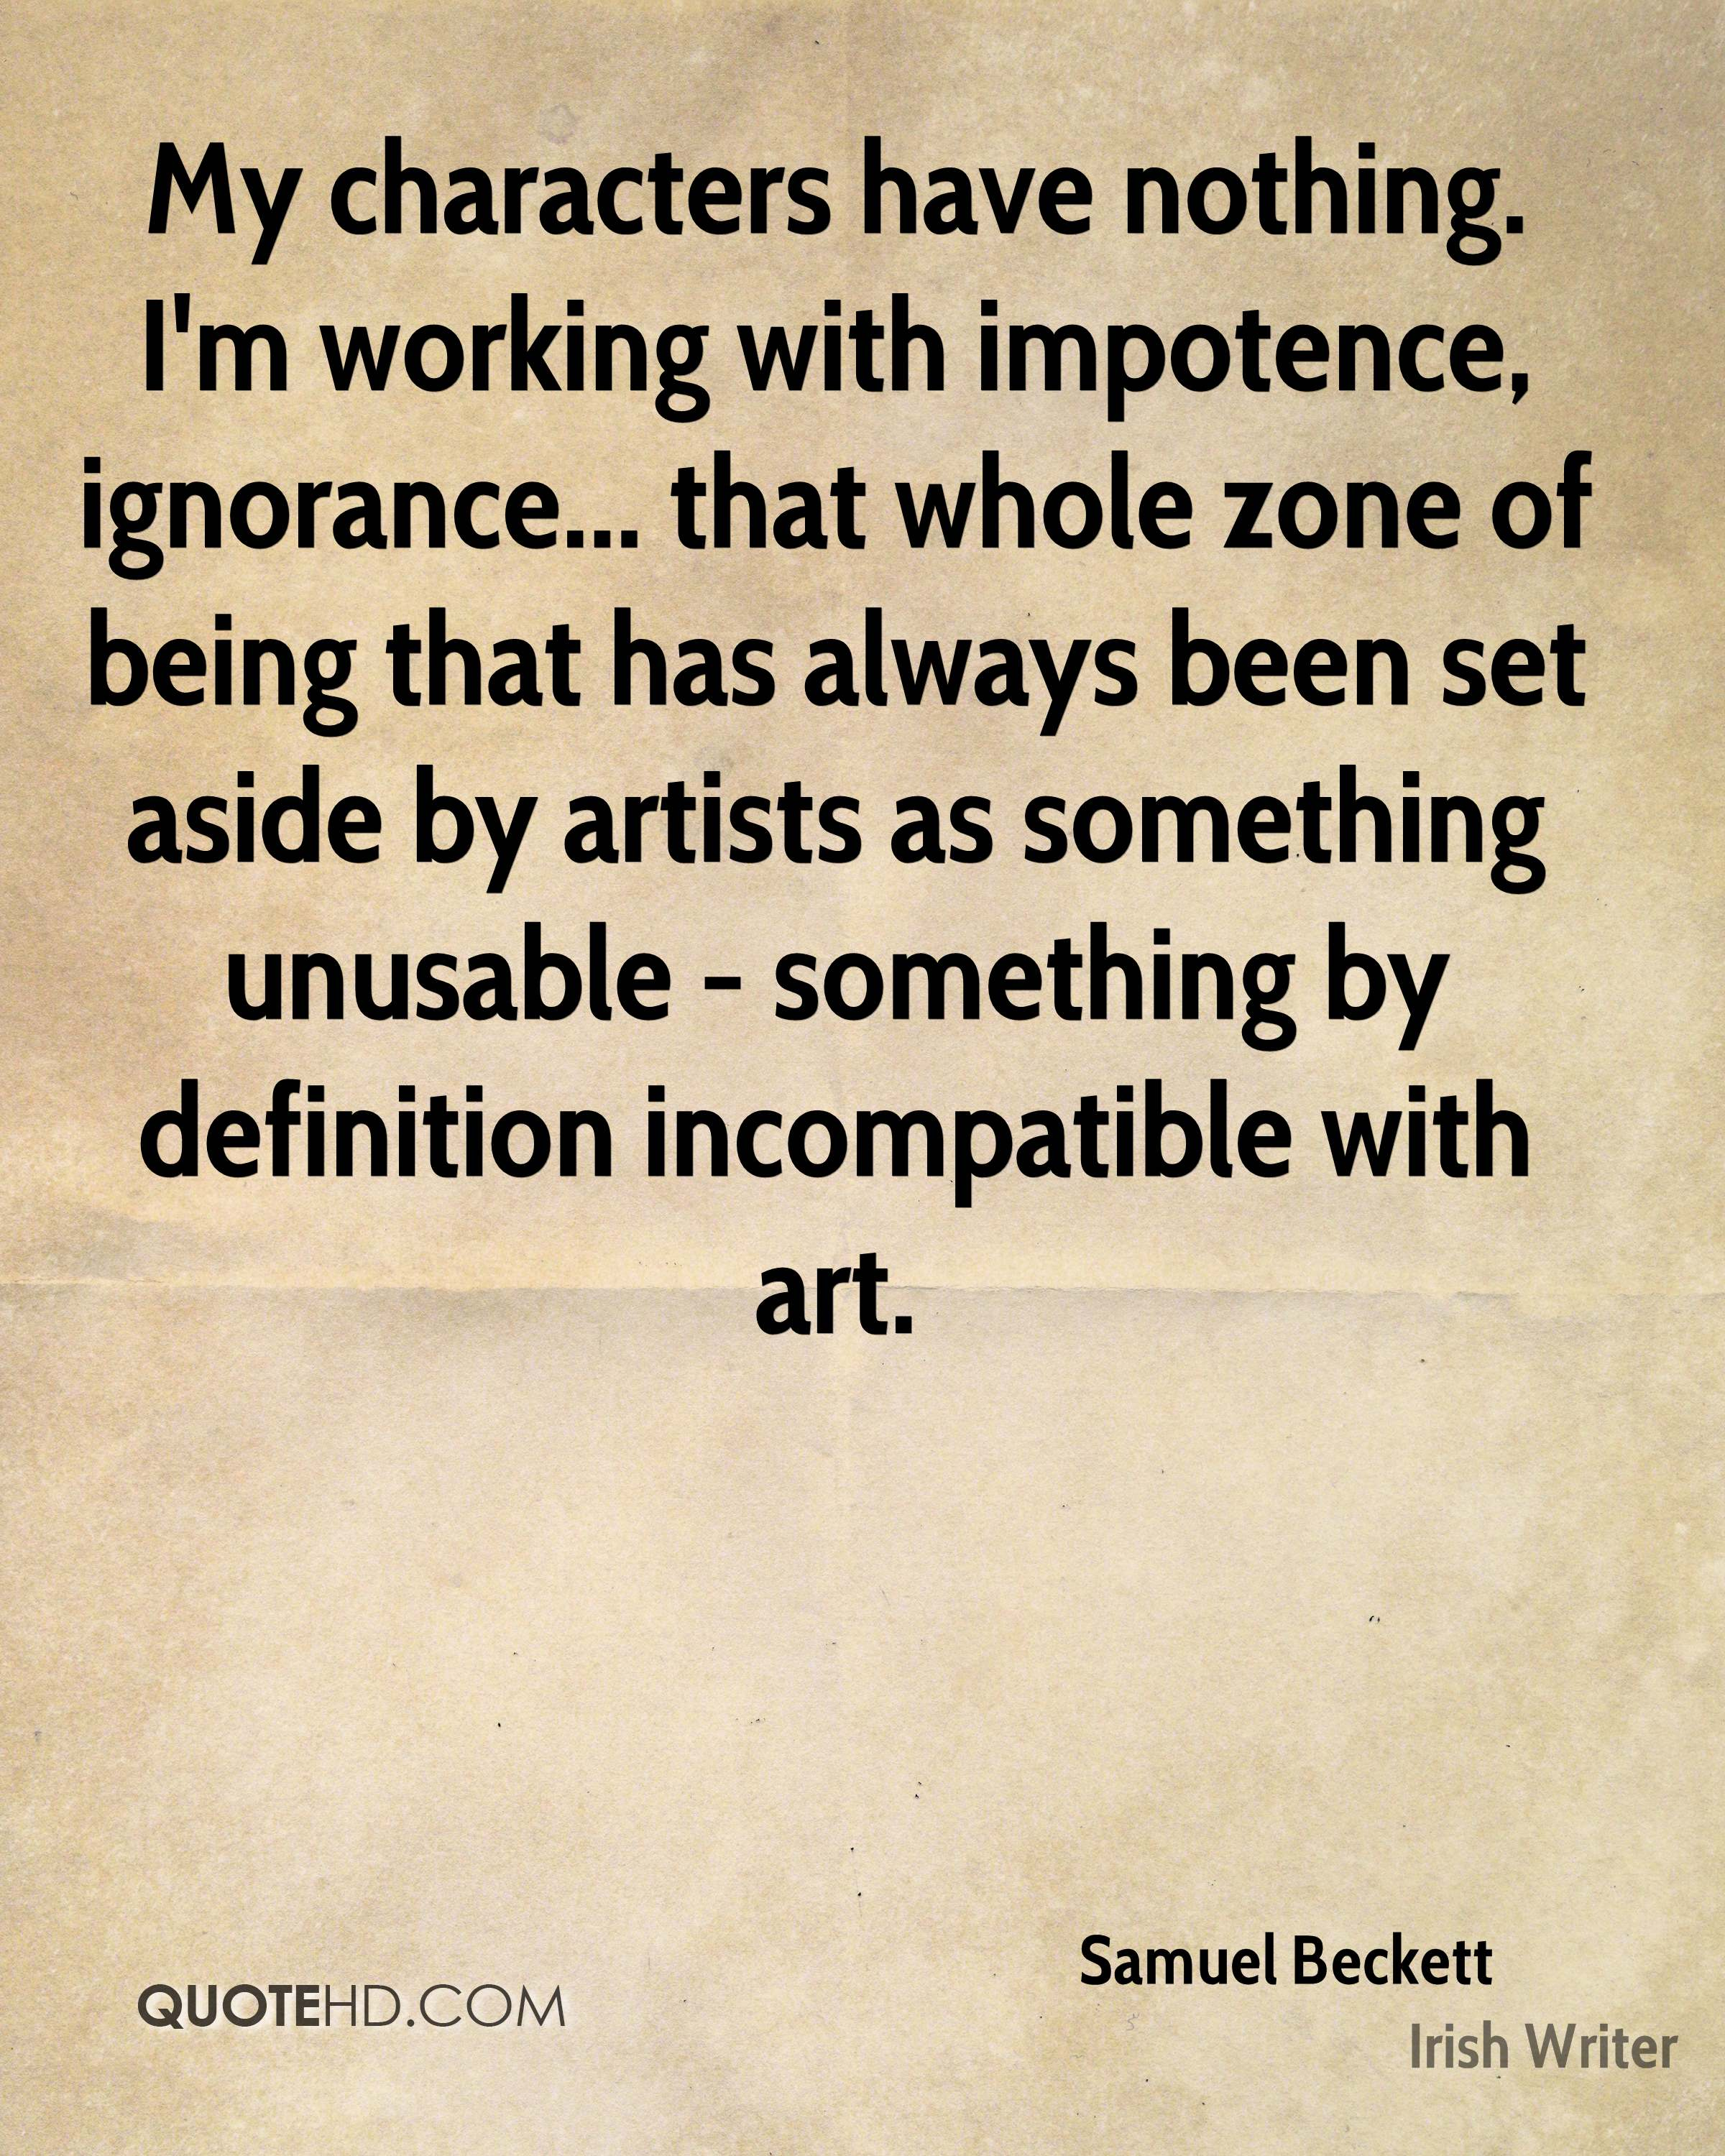 My characters have nothing. I'm working with impotence, ignorance... that whole zone of being that has always been set aside by artists as something unusable - something by definition incompatible with art.